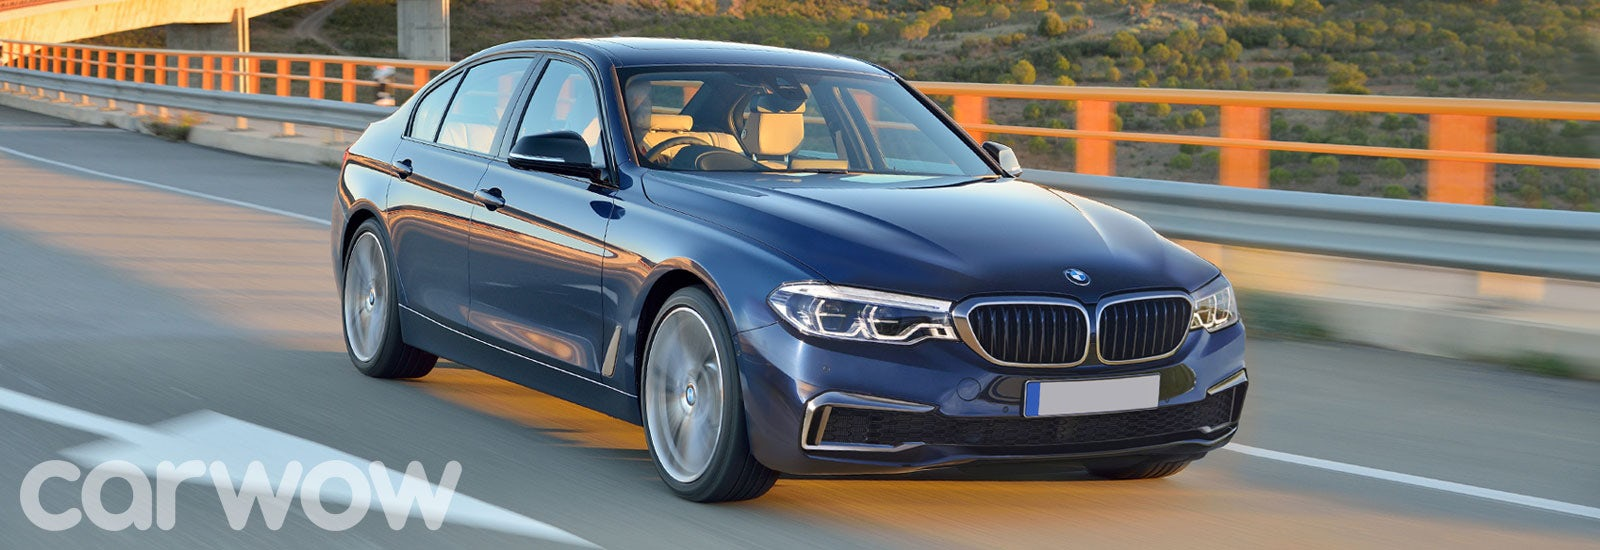 New bmw 8 series price specs release date carwow - Bmw 3 Series Styling